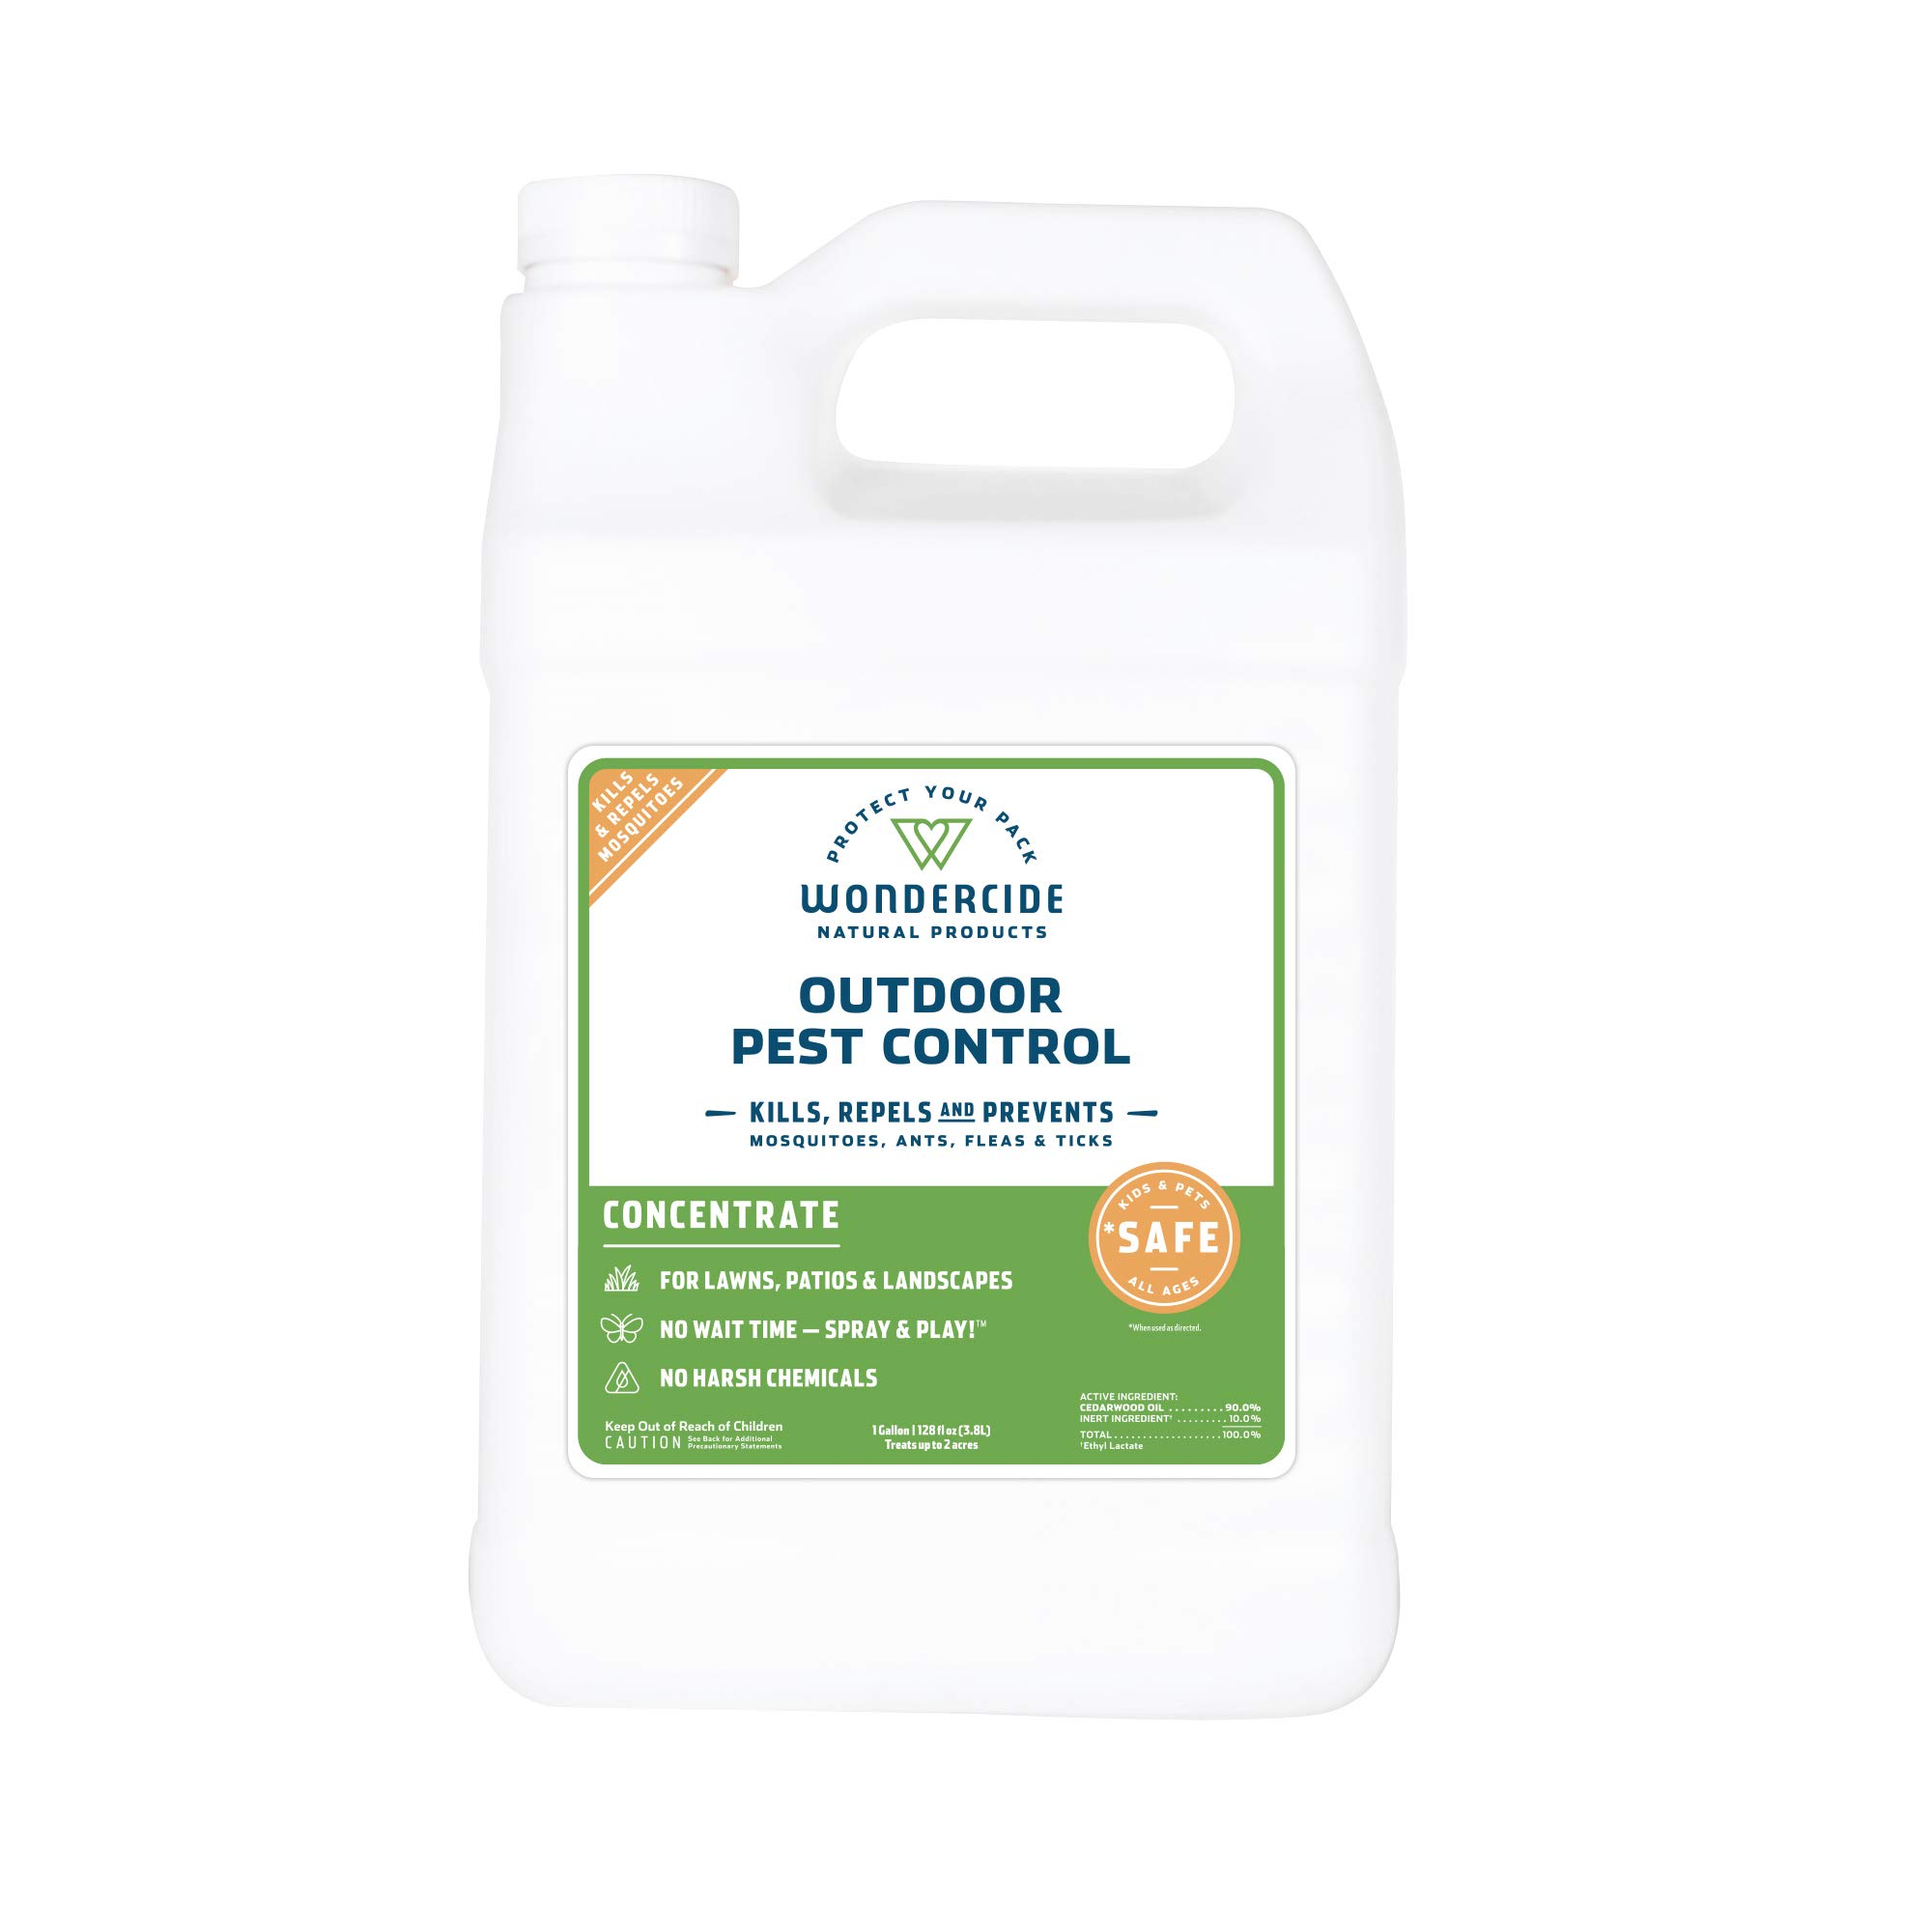 Wondercide EcoTreat - Natural Outdoor Pest Control Concentrate - 32 oz by Wondercide